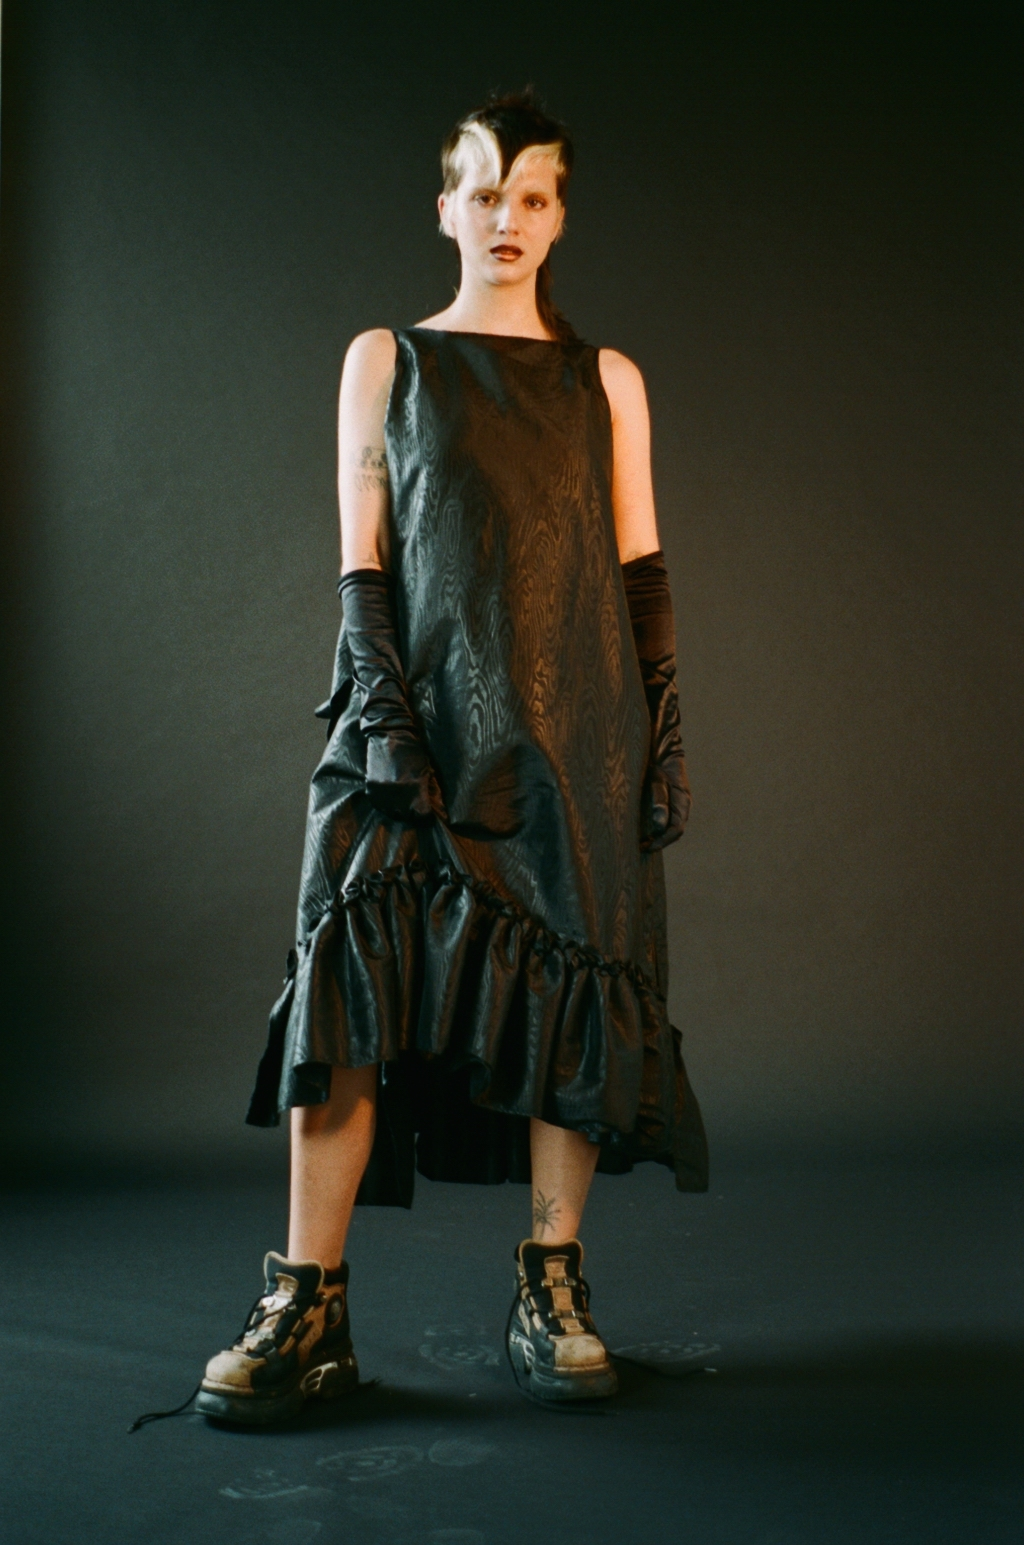 dress William Dill - Russell, gloves STYLIST'S OWN,shoes Buffalo